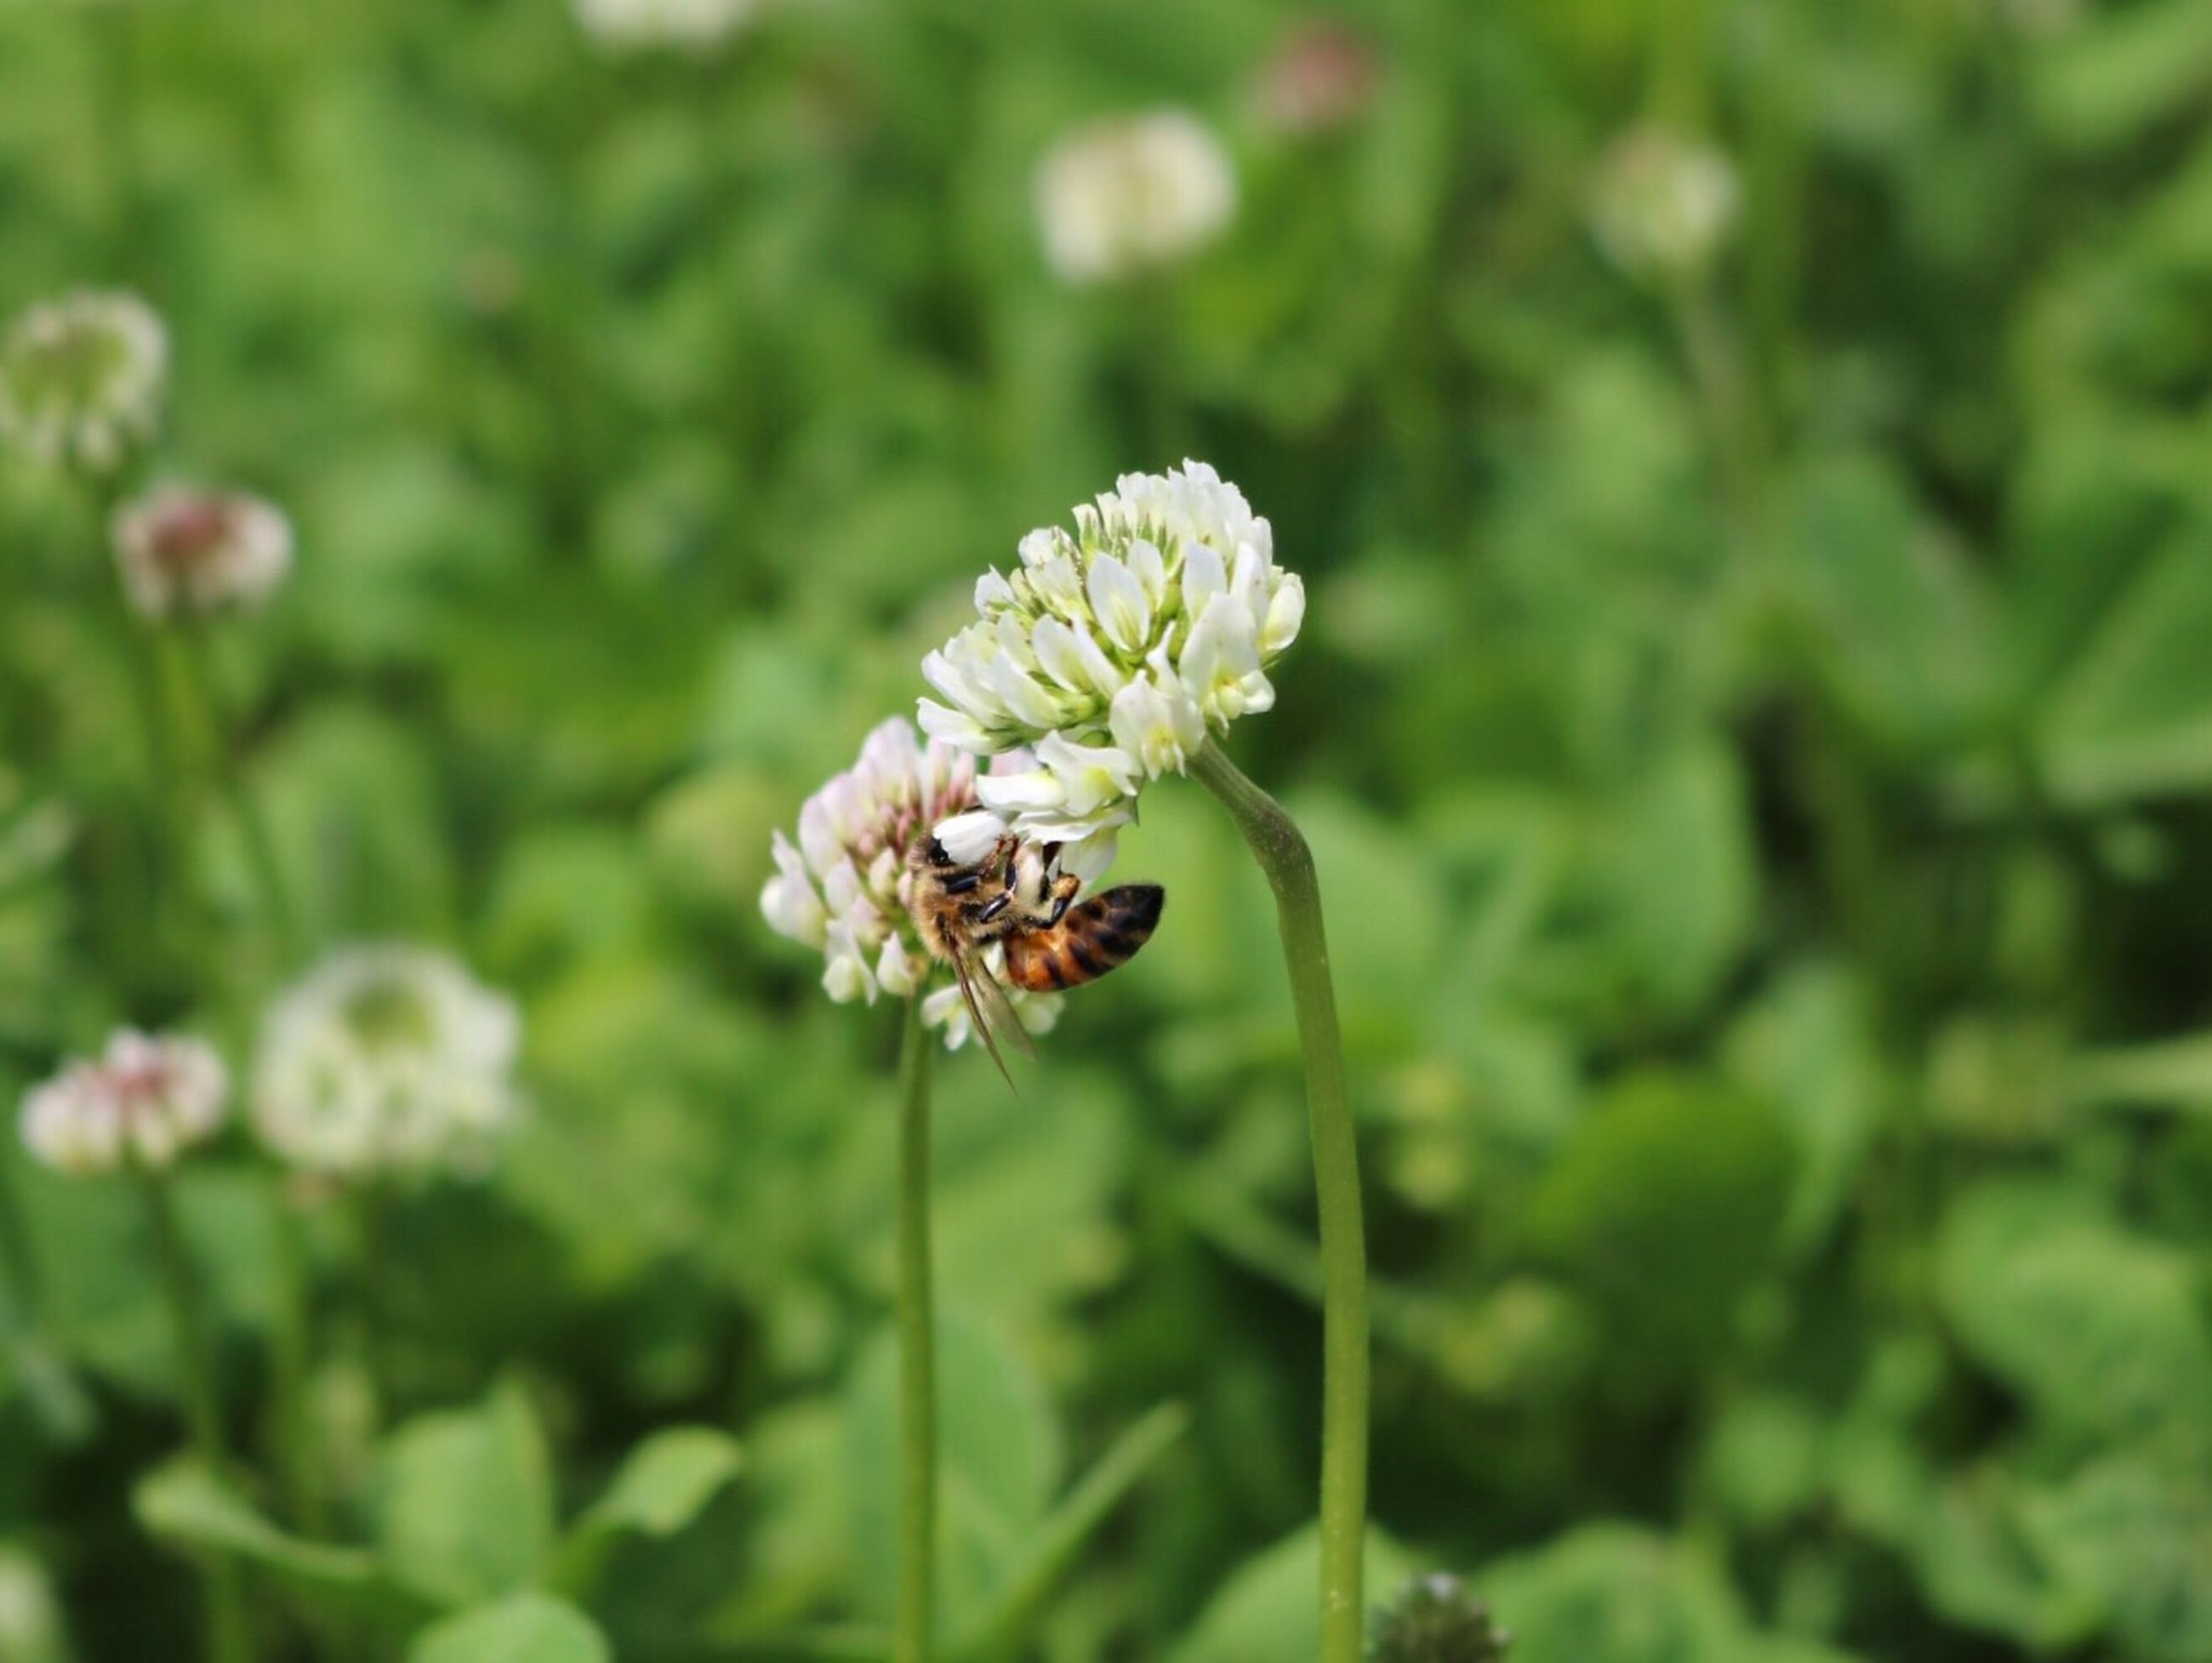 insect, animal themes, animals in the wild, one animal, wildlife, flower, close-up, plant, focus on foreground, fragility, growth, nature, stem, selective focus, freshness, beauty in nature, bee, green color, pollination, outdoors